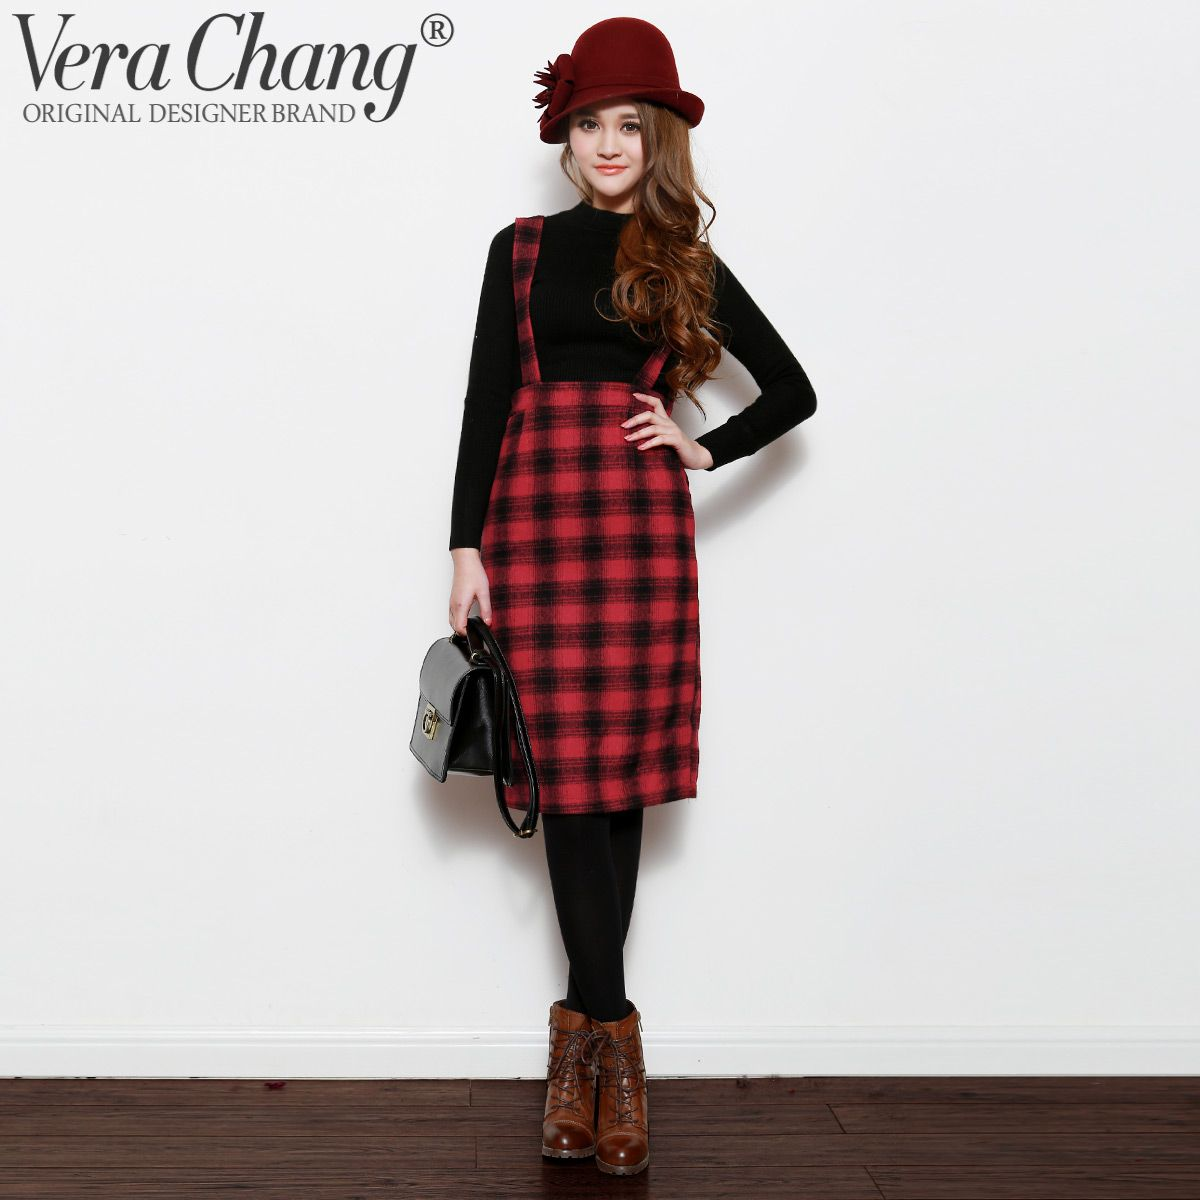 Autumn and winter women vera chang vintage 80s fashion plaid high waist woolen braces skirt one Fashion style in 80 s